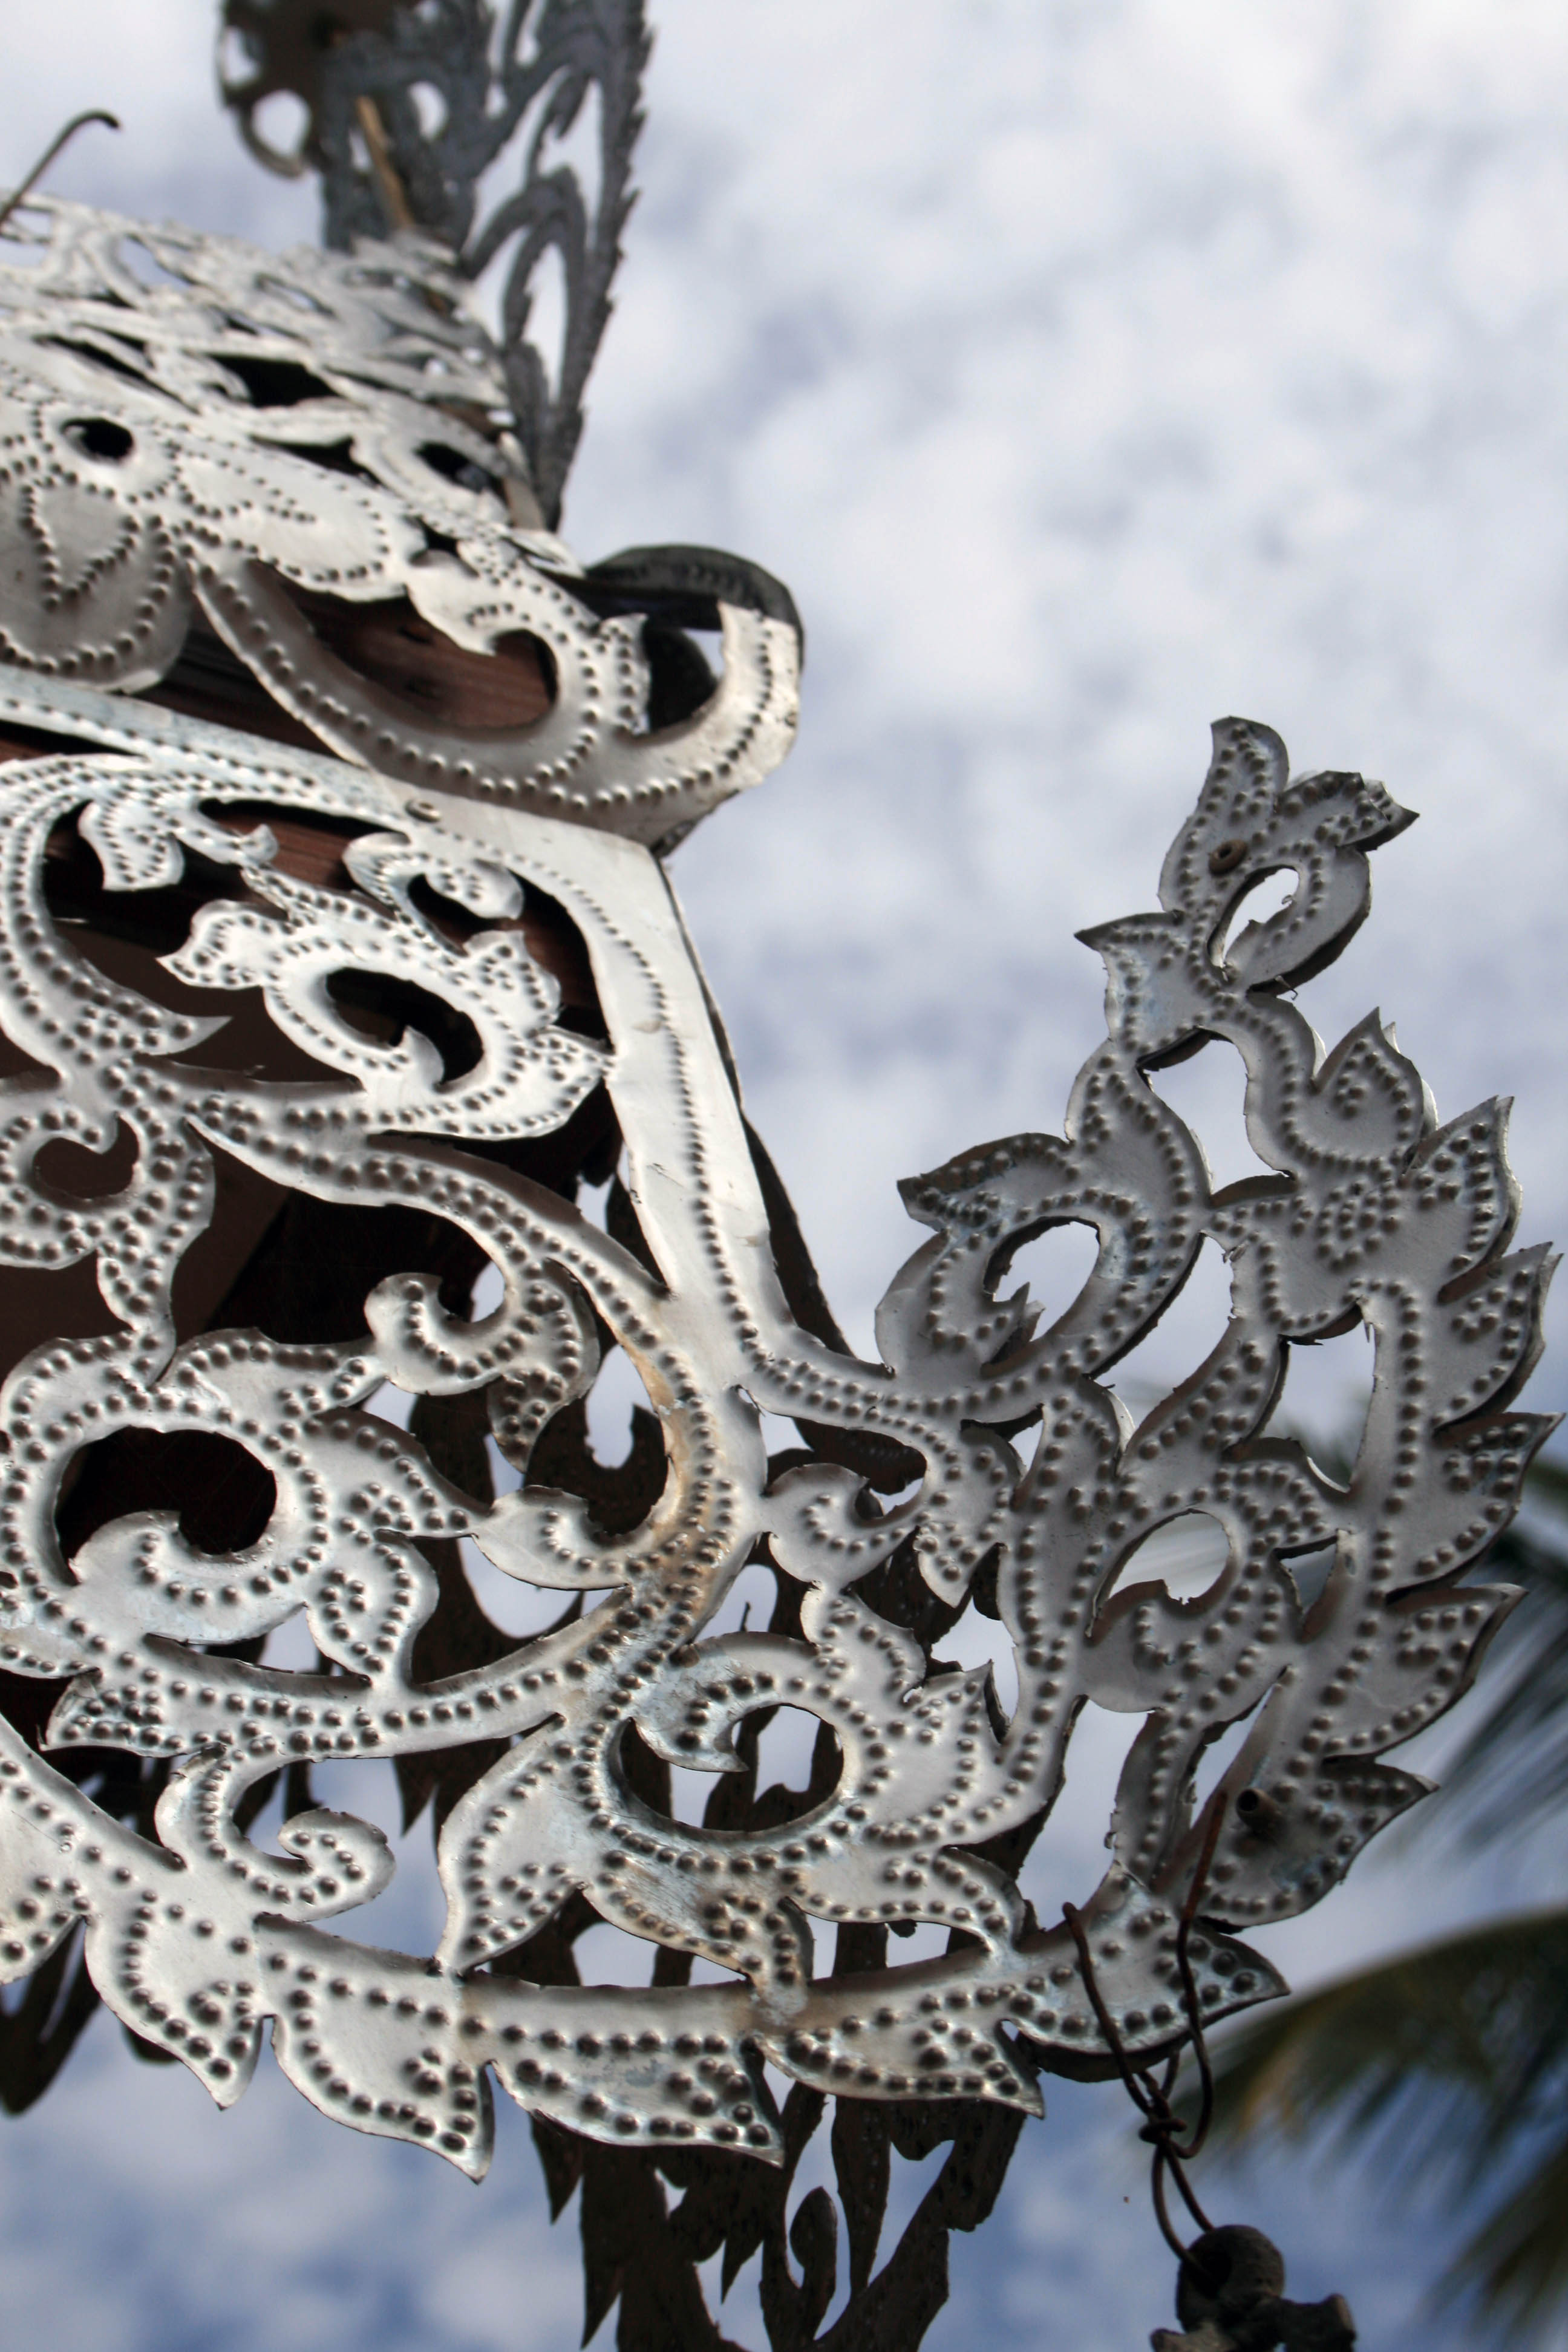 Zinc metalwork at Wat Phra That Doi Kong Mu.